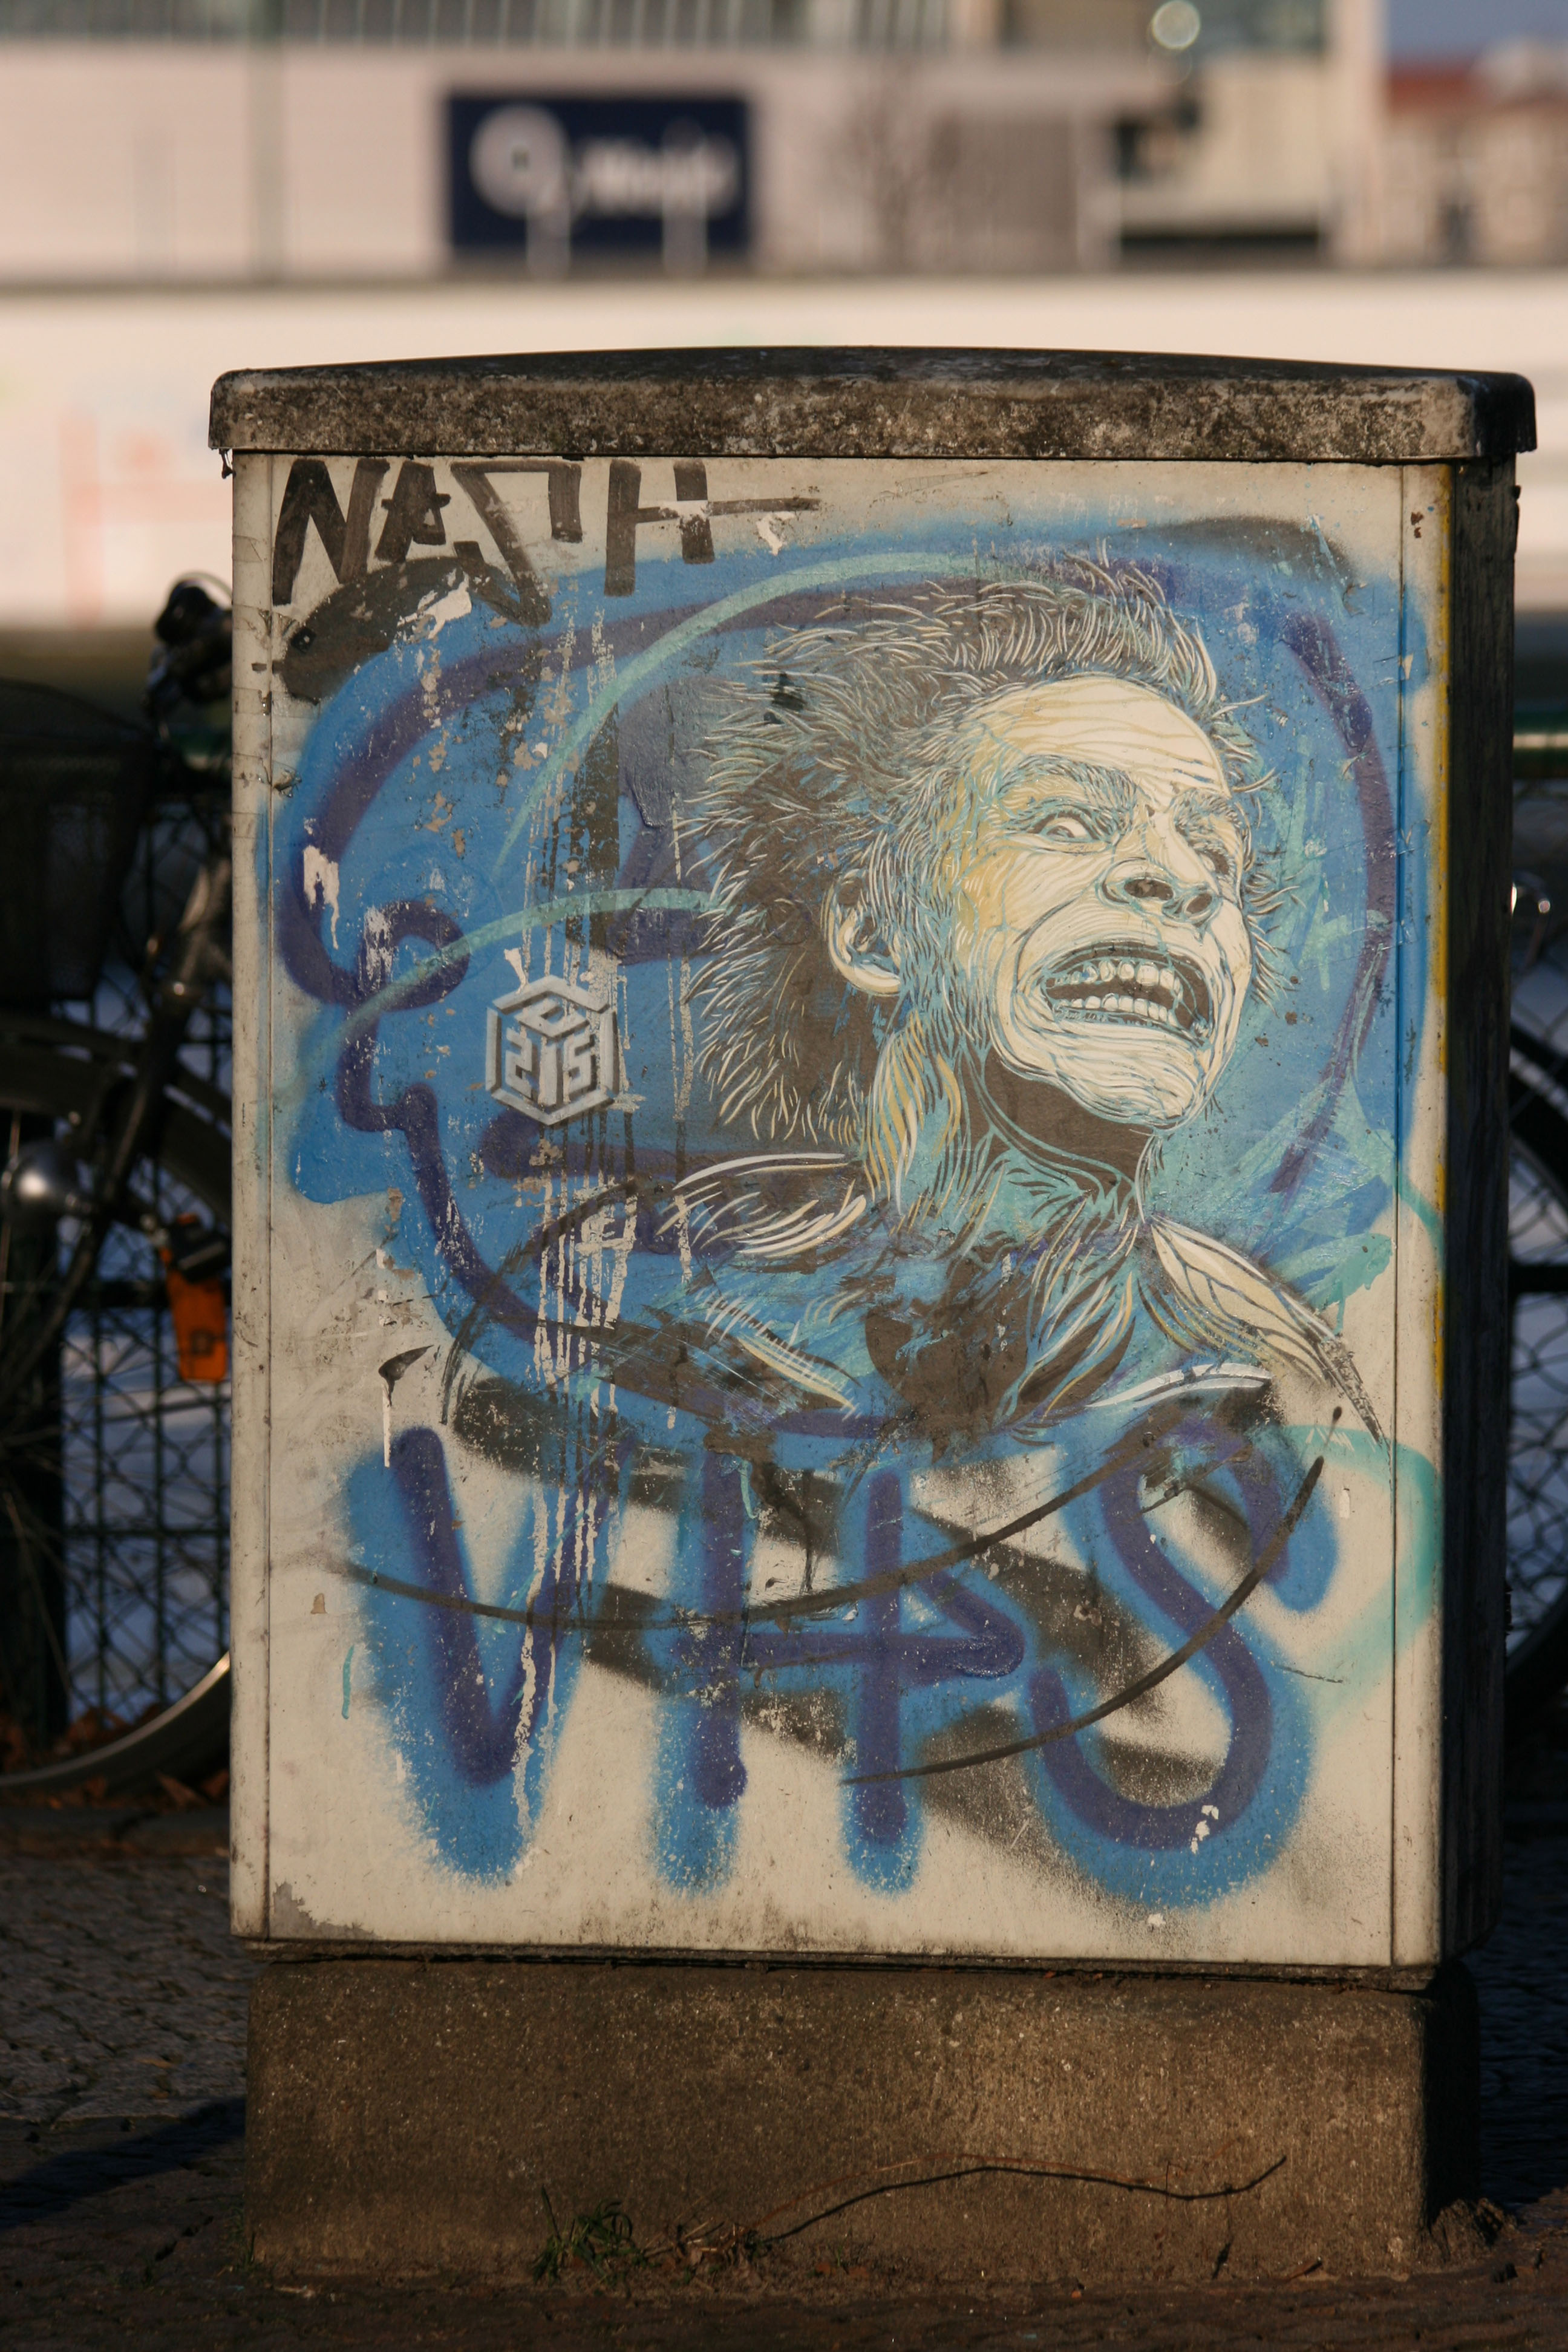 Manic in the Sun: Street Art by C215 in Berlin